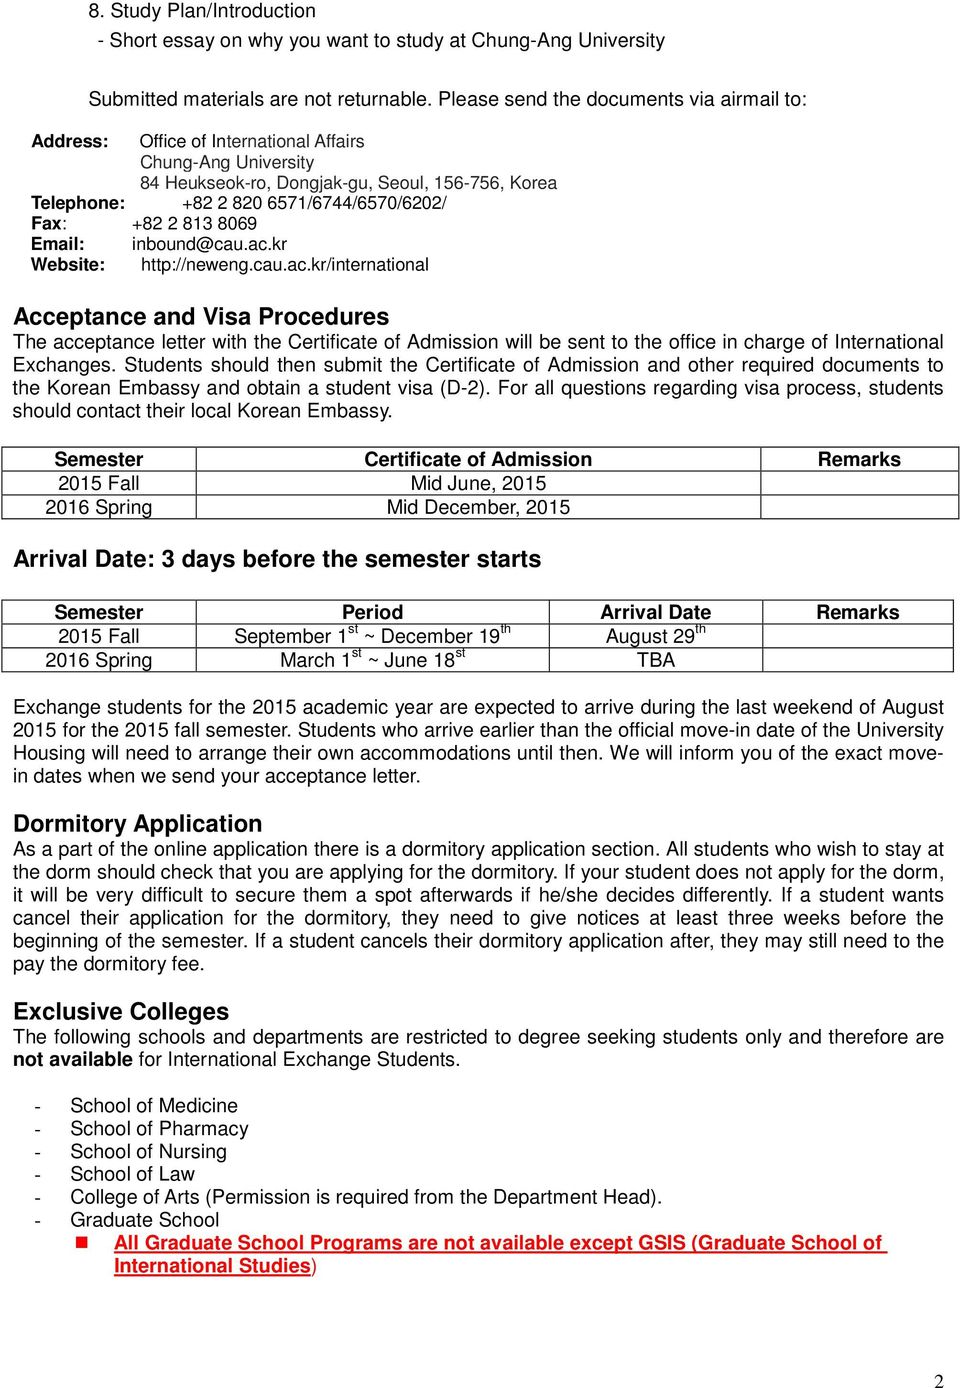 Application and Admission Procedures - PDF